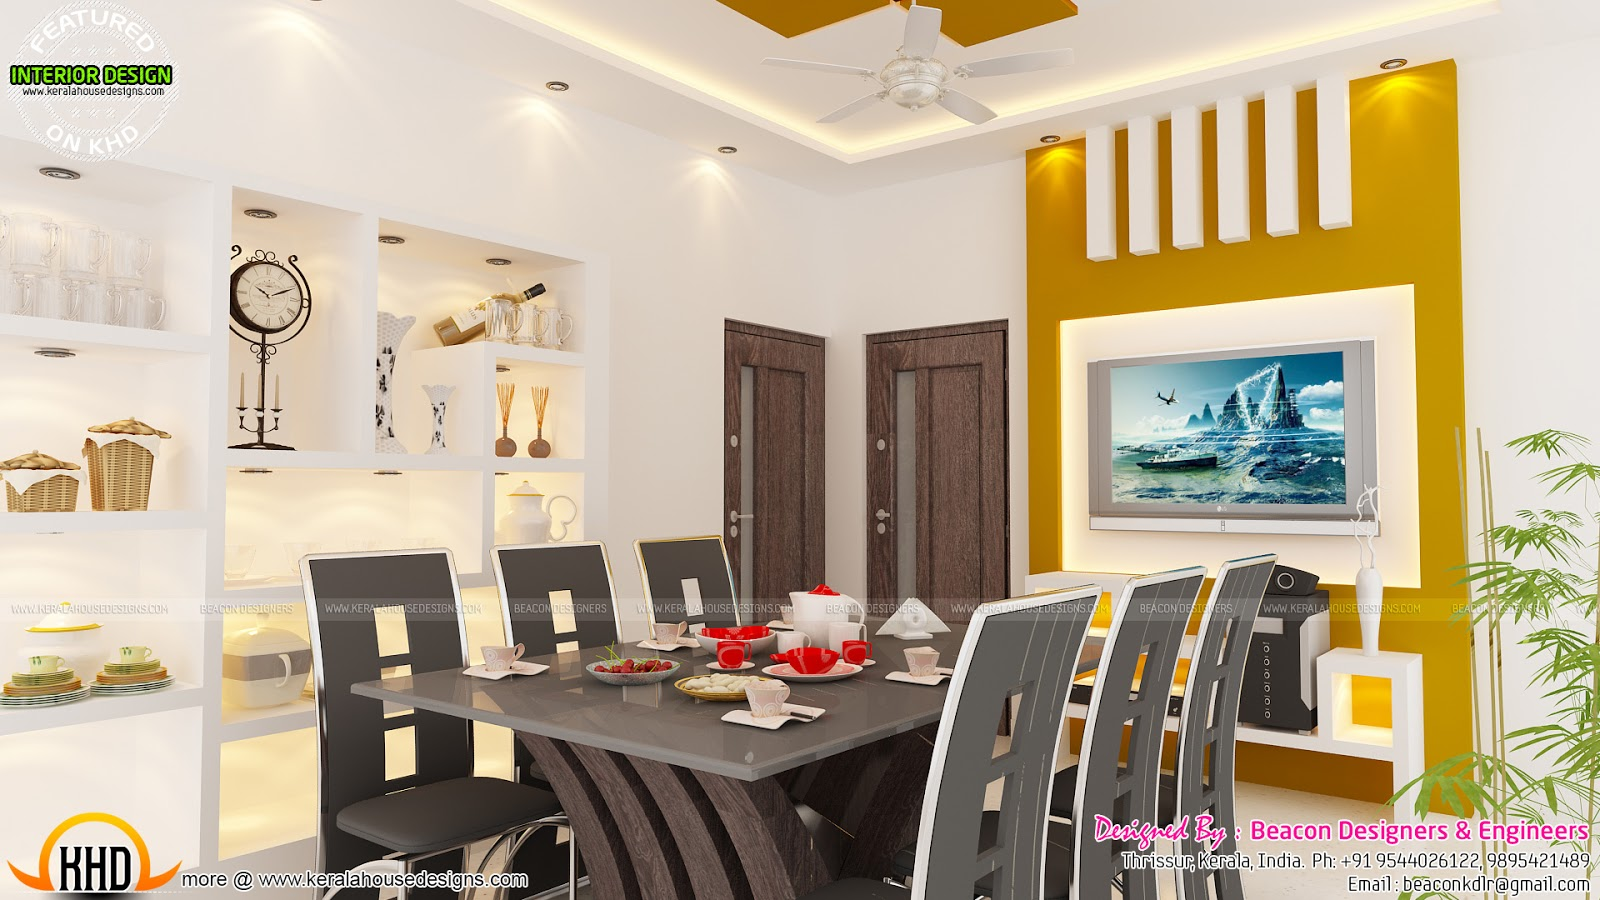 Kerala interior designs kerala home design and floor plans for Dining room designs kerala